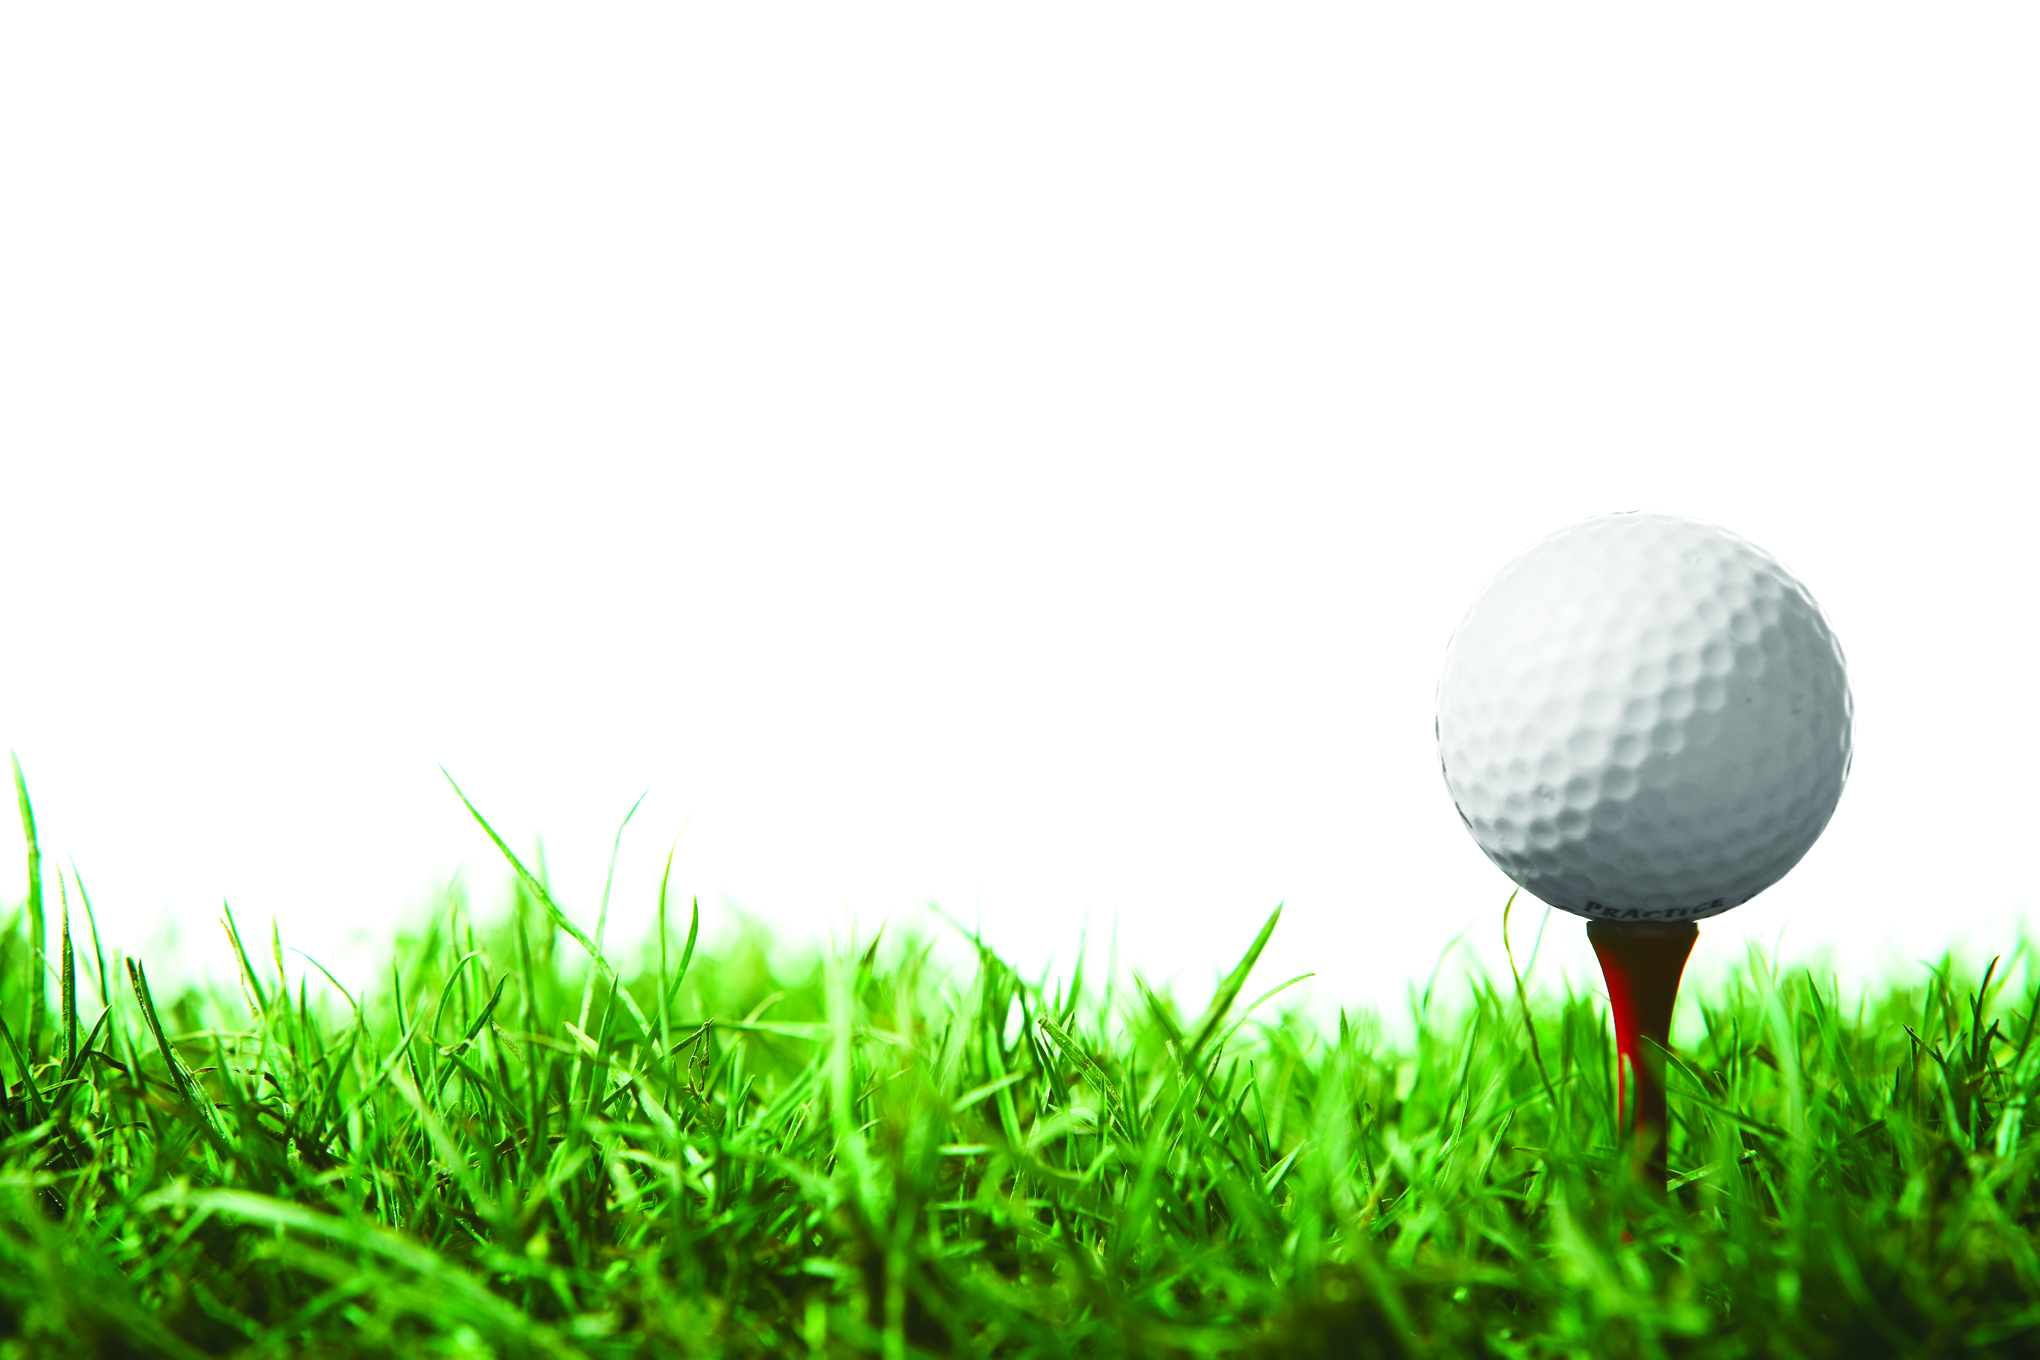 Free golf clipart pictures graphic black and white download Free Golf Border Cliparts, Download Free Clip Art, Free Clip Art on ... graphic black and white download